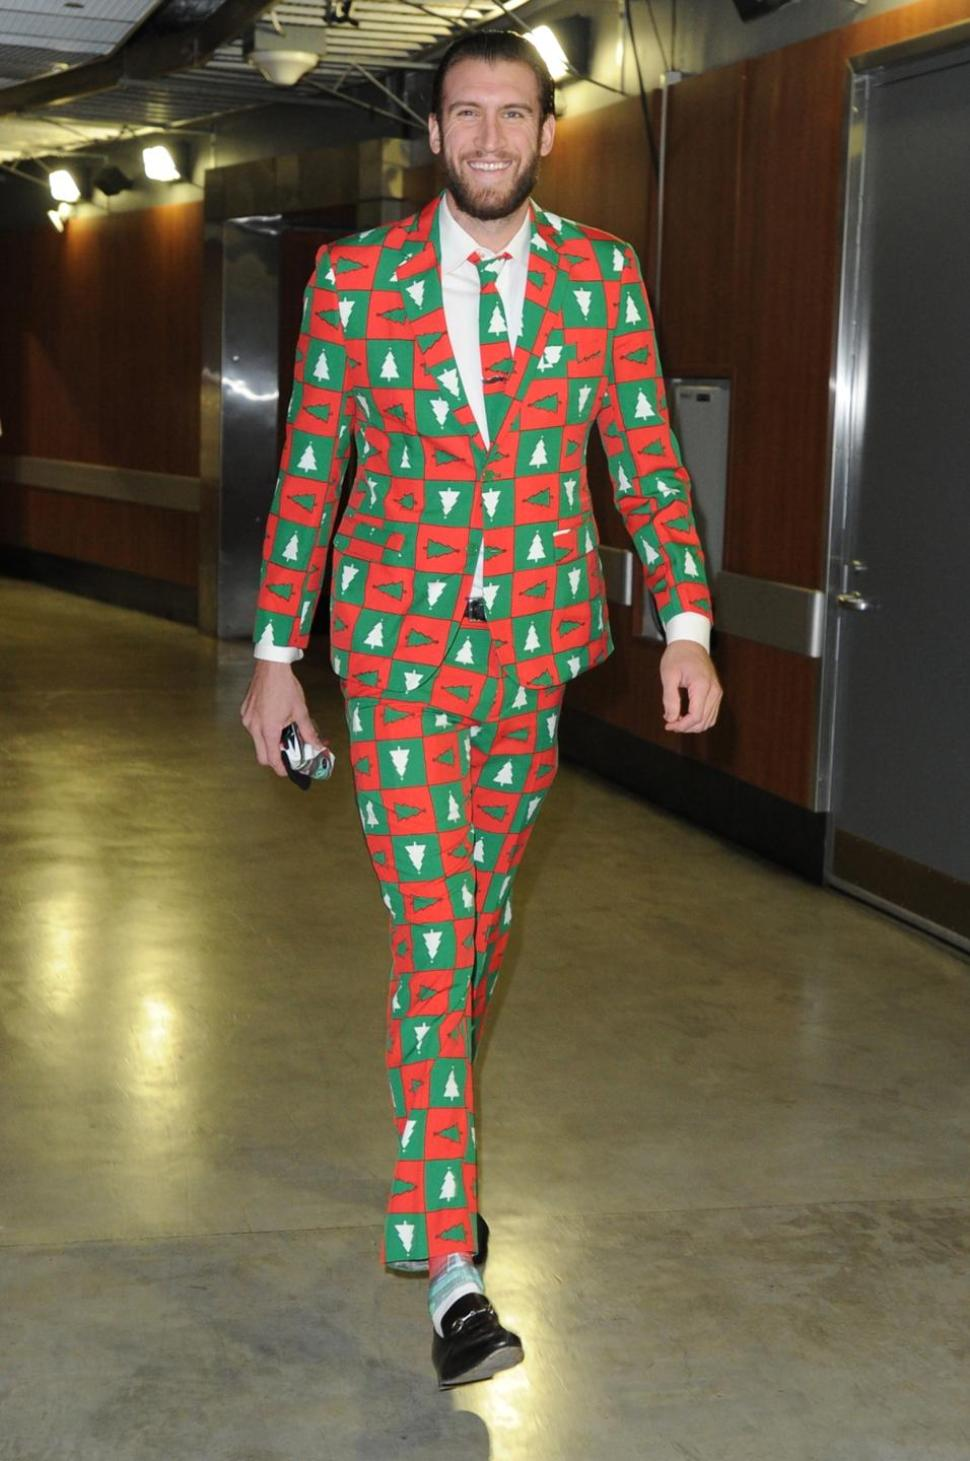 nba-Spencer-hawes-christmas-trees-suit